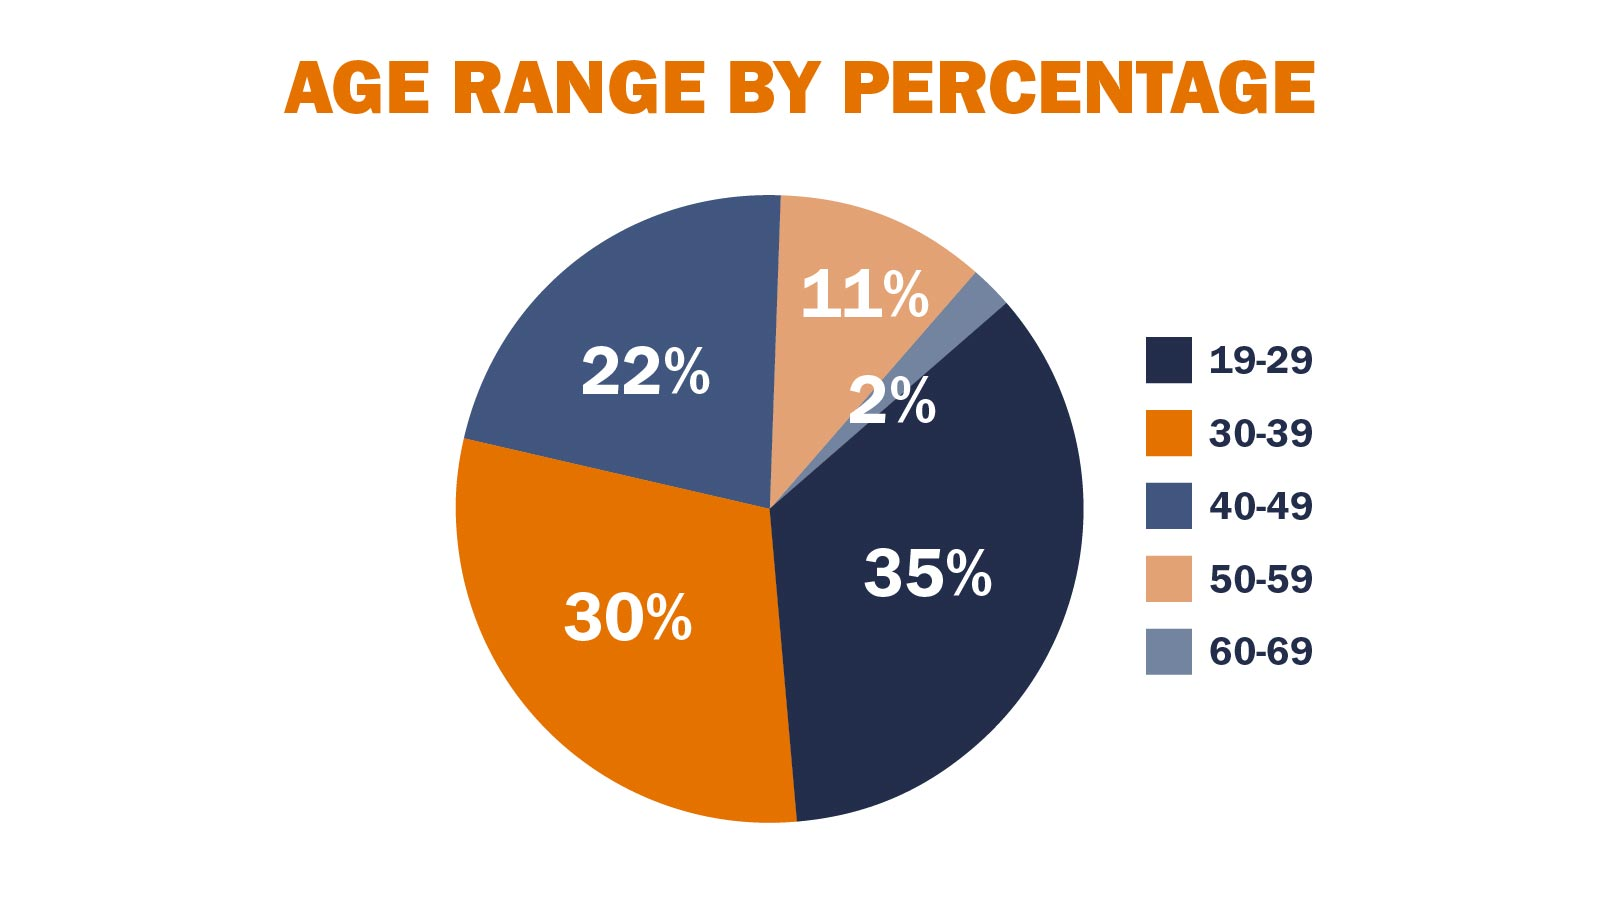 A pie chart showing students' age range: 35% are 19-29, 30% are 30-39, 22% are 40-49, 11% are 50-59 and 2% are 60-69.